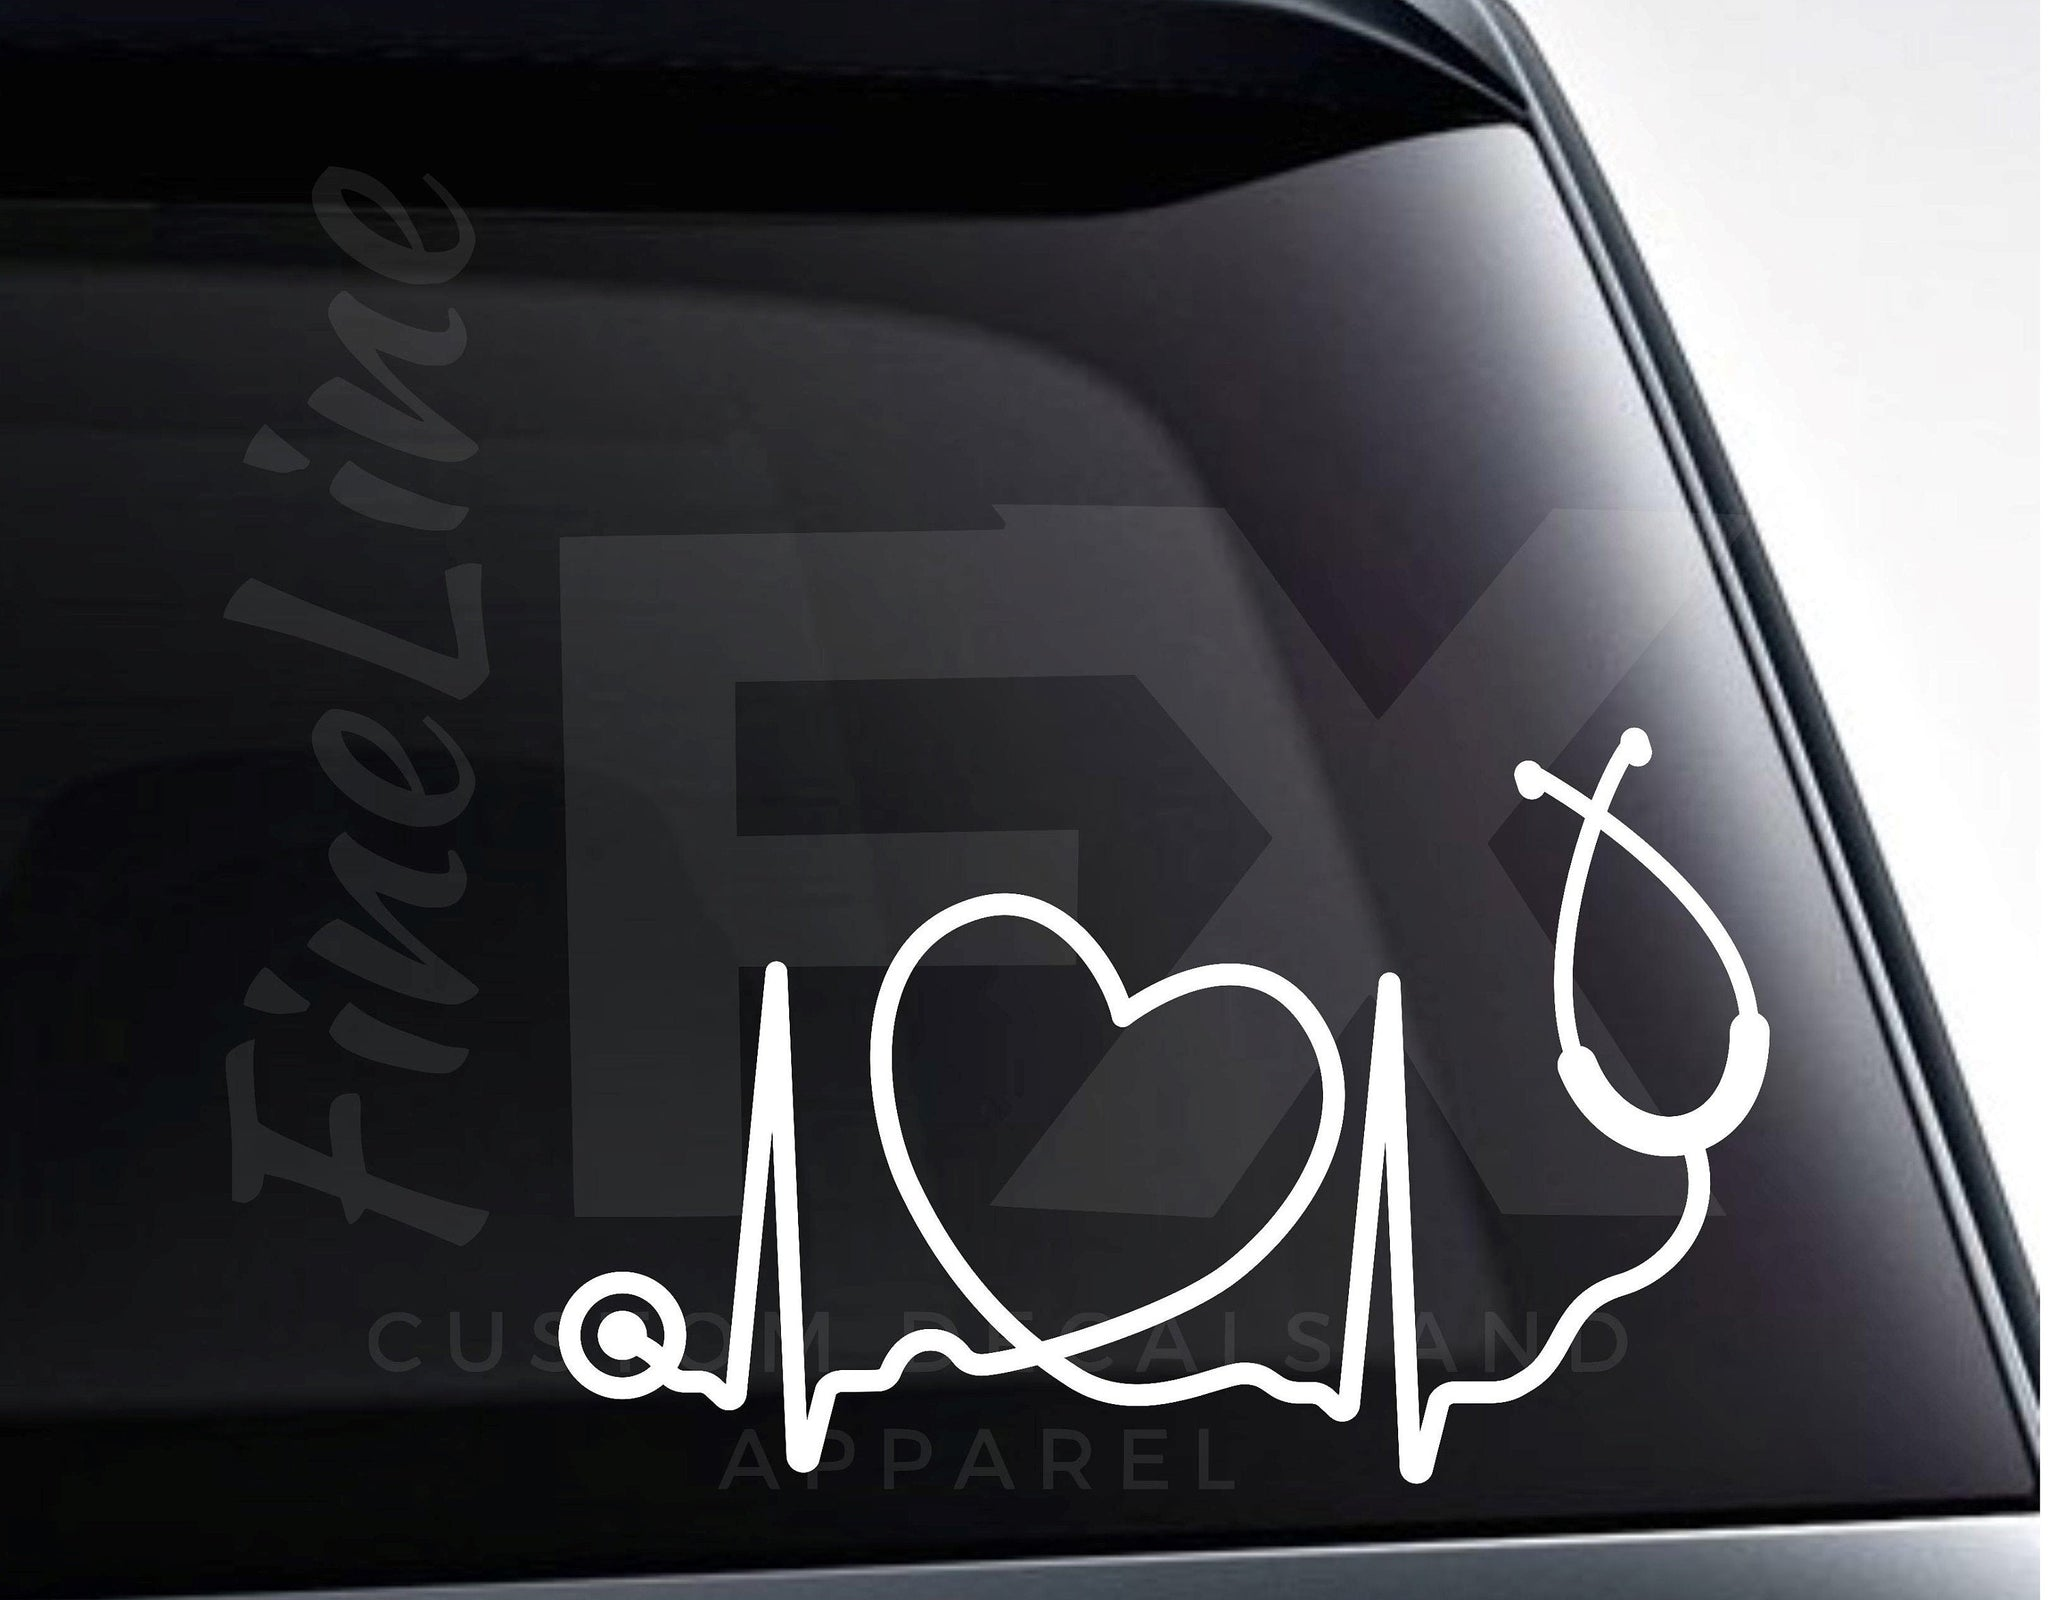 Heartbeat Heart Stethoscope Vinyl Decal Sticker